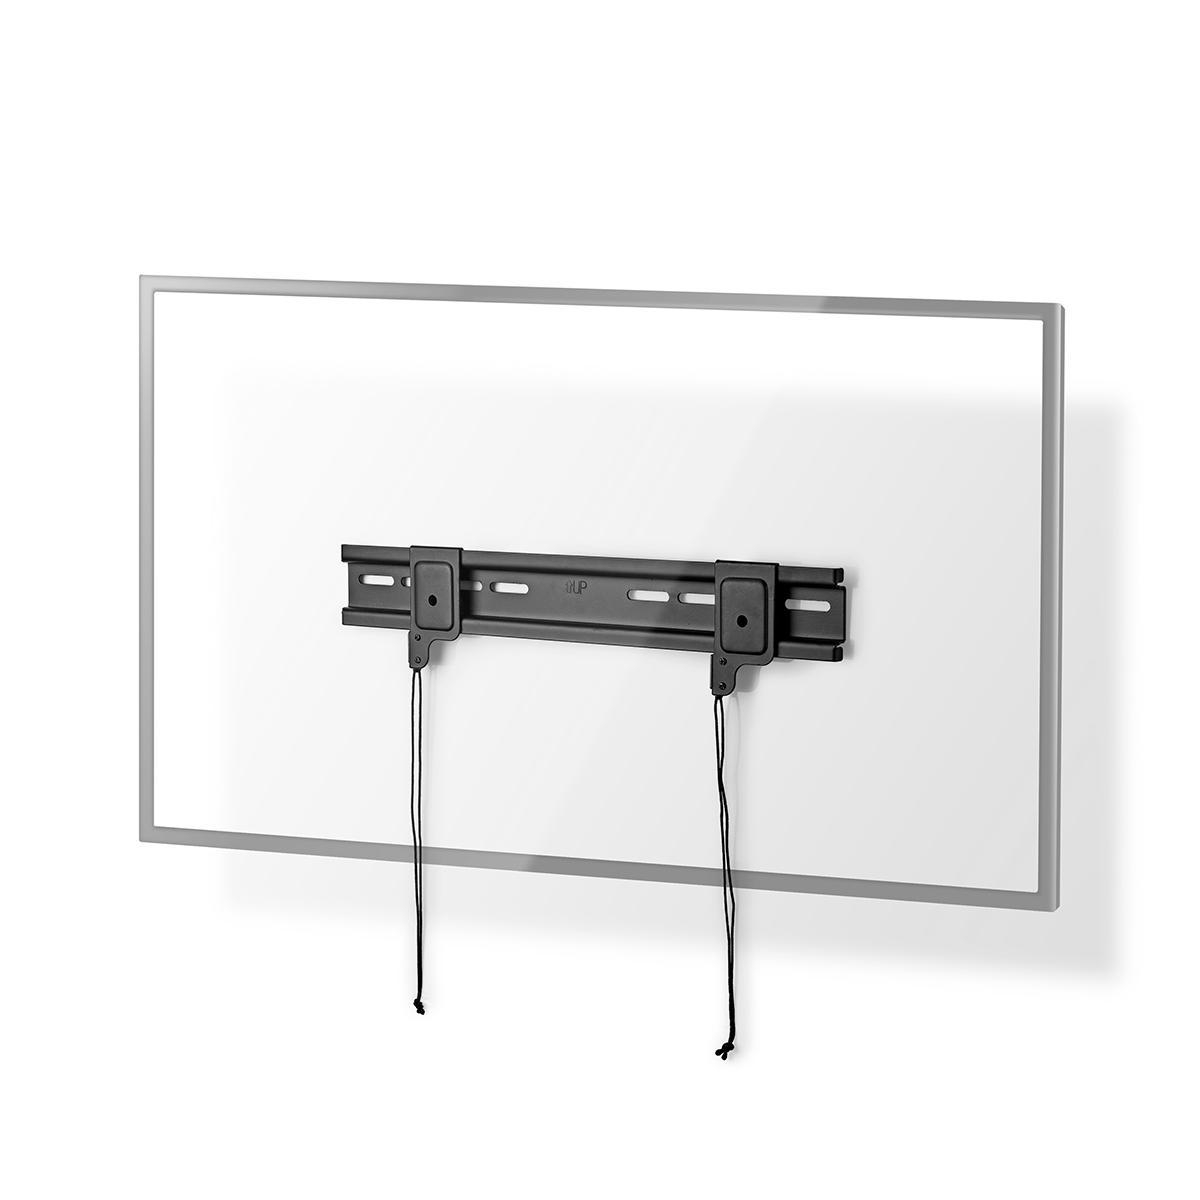 SOPORTE TV FIJO PARED 2642  PESO MAX 30 kg DISTANCIA MINIMA PARED 16 mm NEGRO